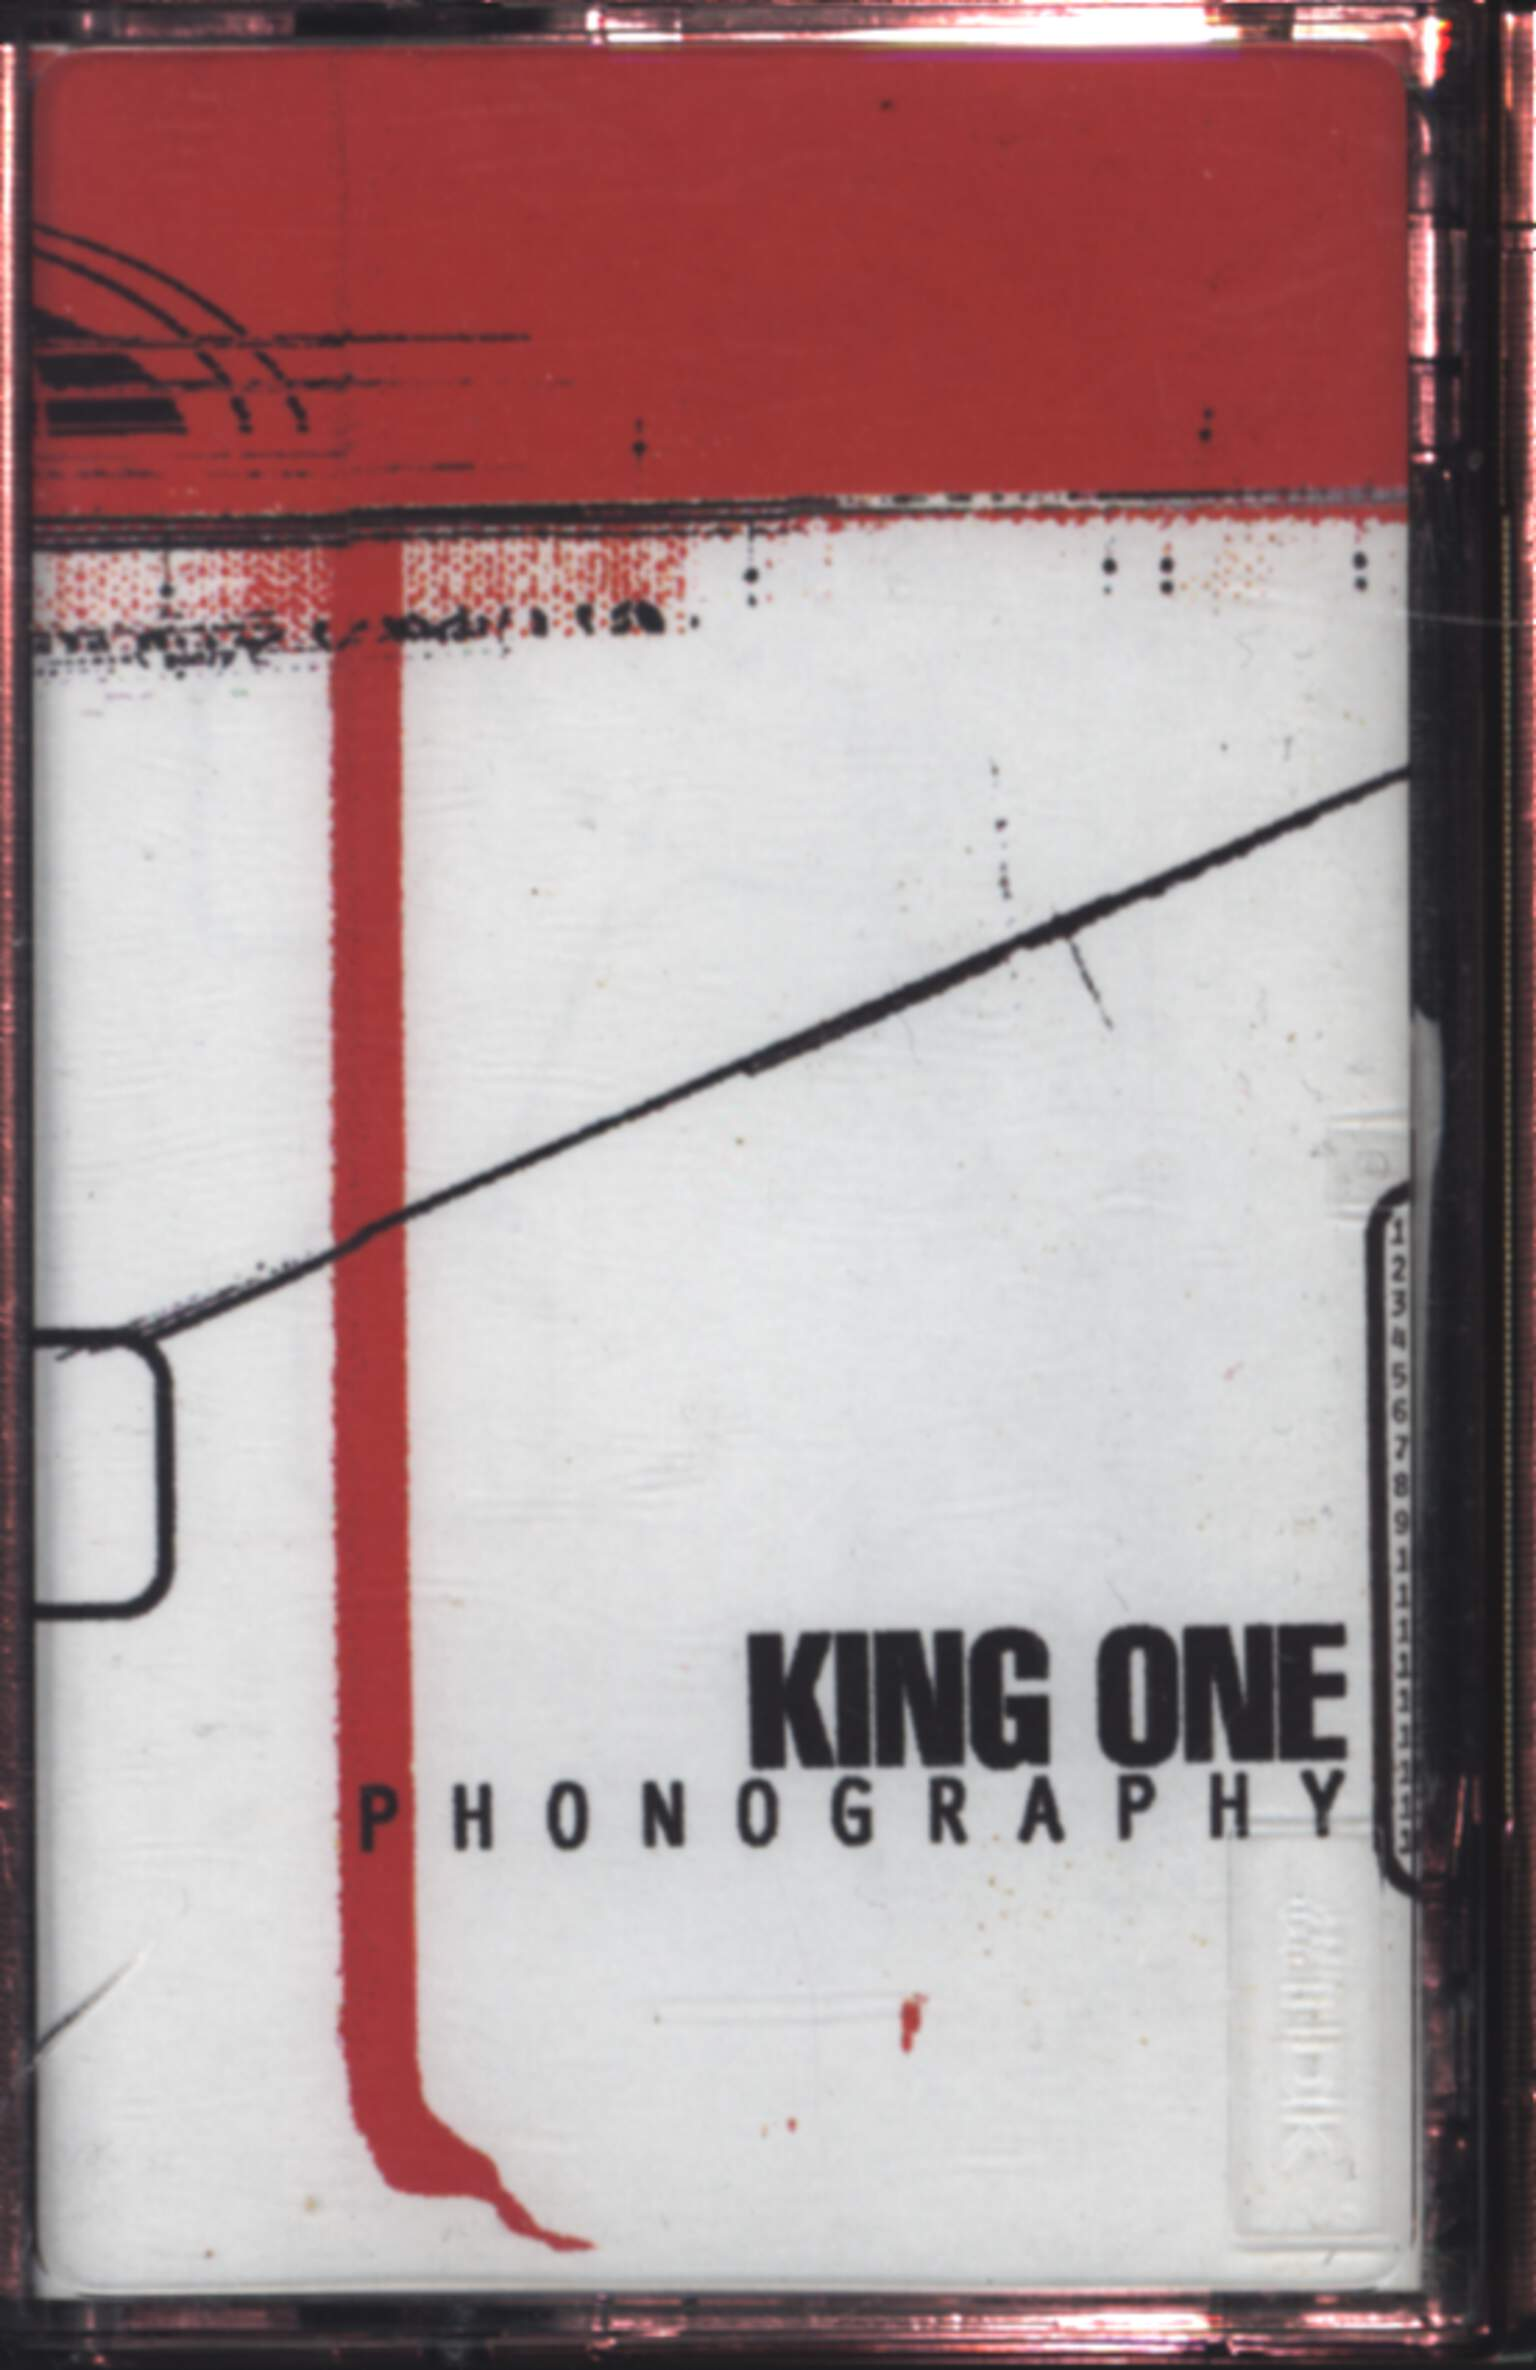 King One: Phonography, Compact Cassette